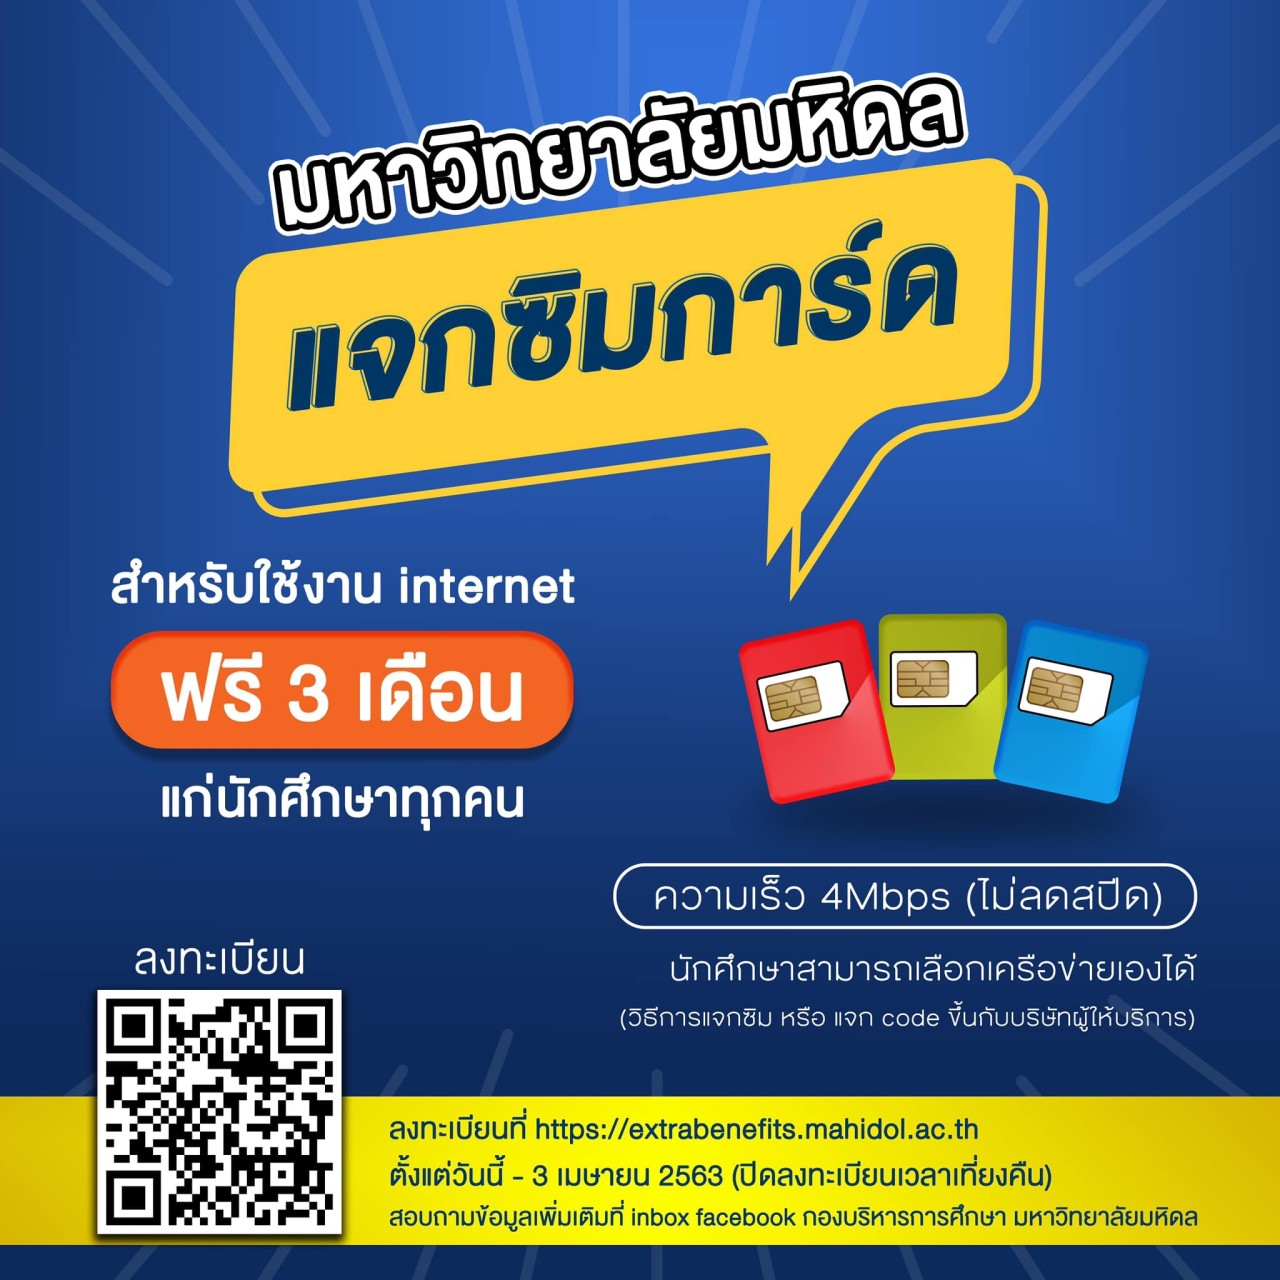 Mahidol University Mahidol University provides SIMCARD for all students to use Free Internet for 3 month